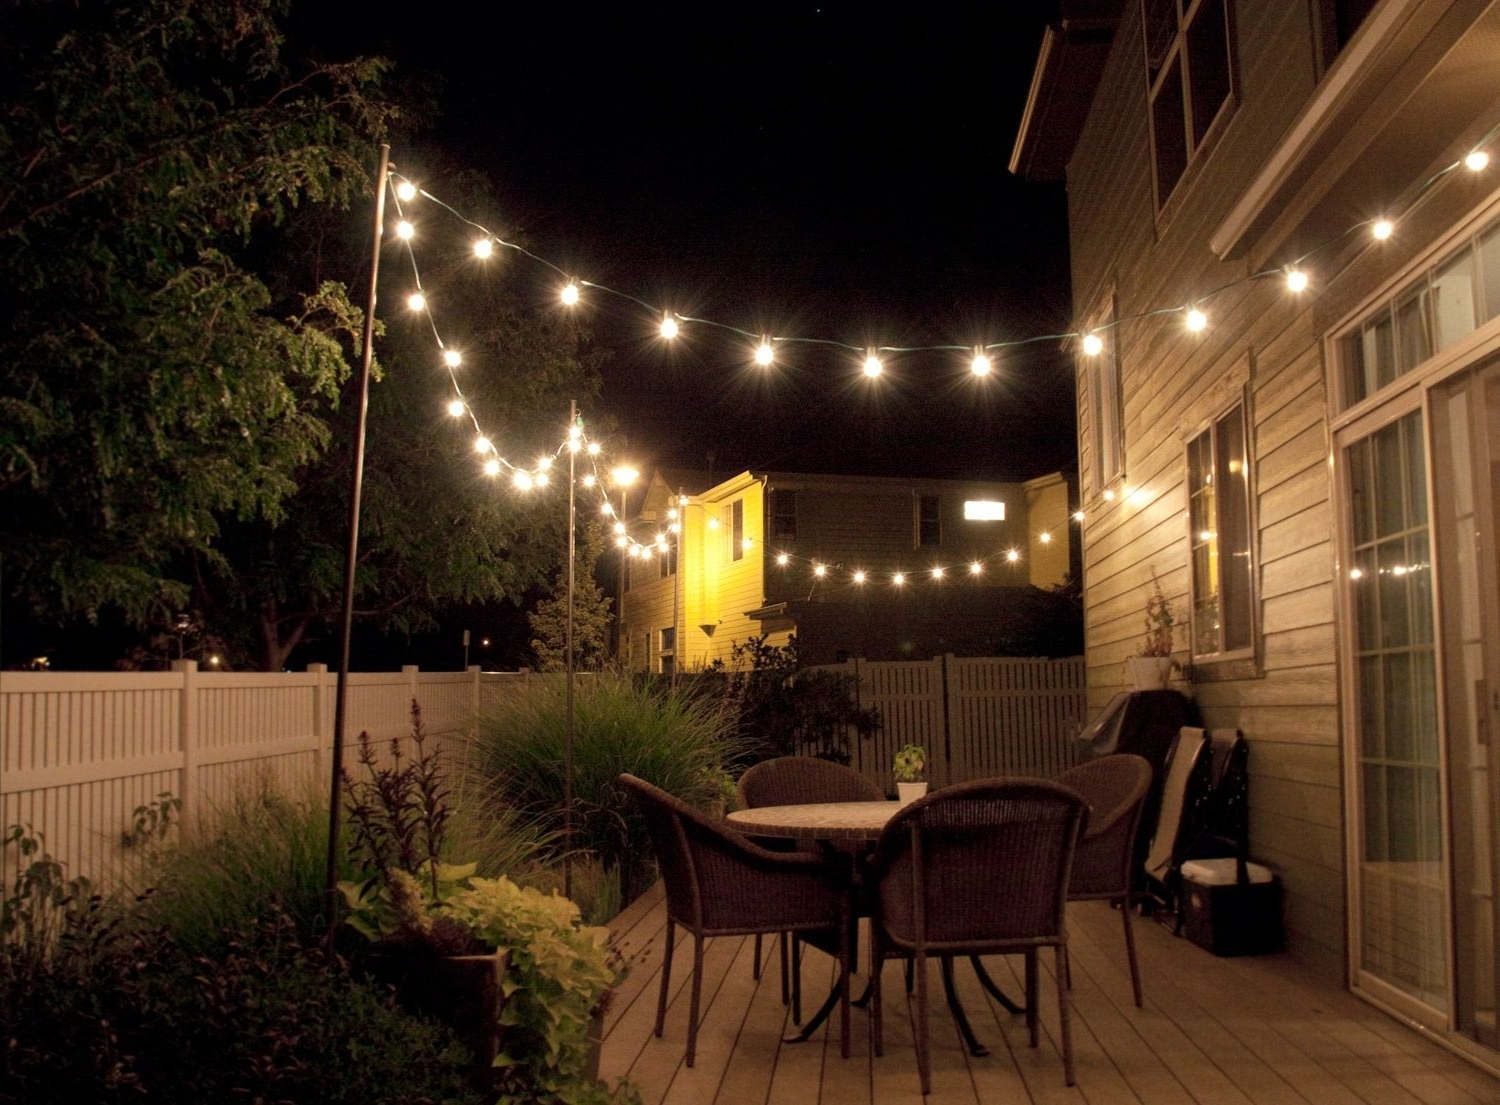 2018 How To Make Inexpensive Poles To Hang String Lights On – Café Style Regarding Outdoor Hanging Deck Lights (Gallery 3 of 20)